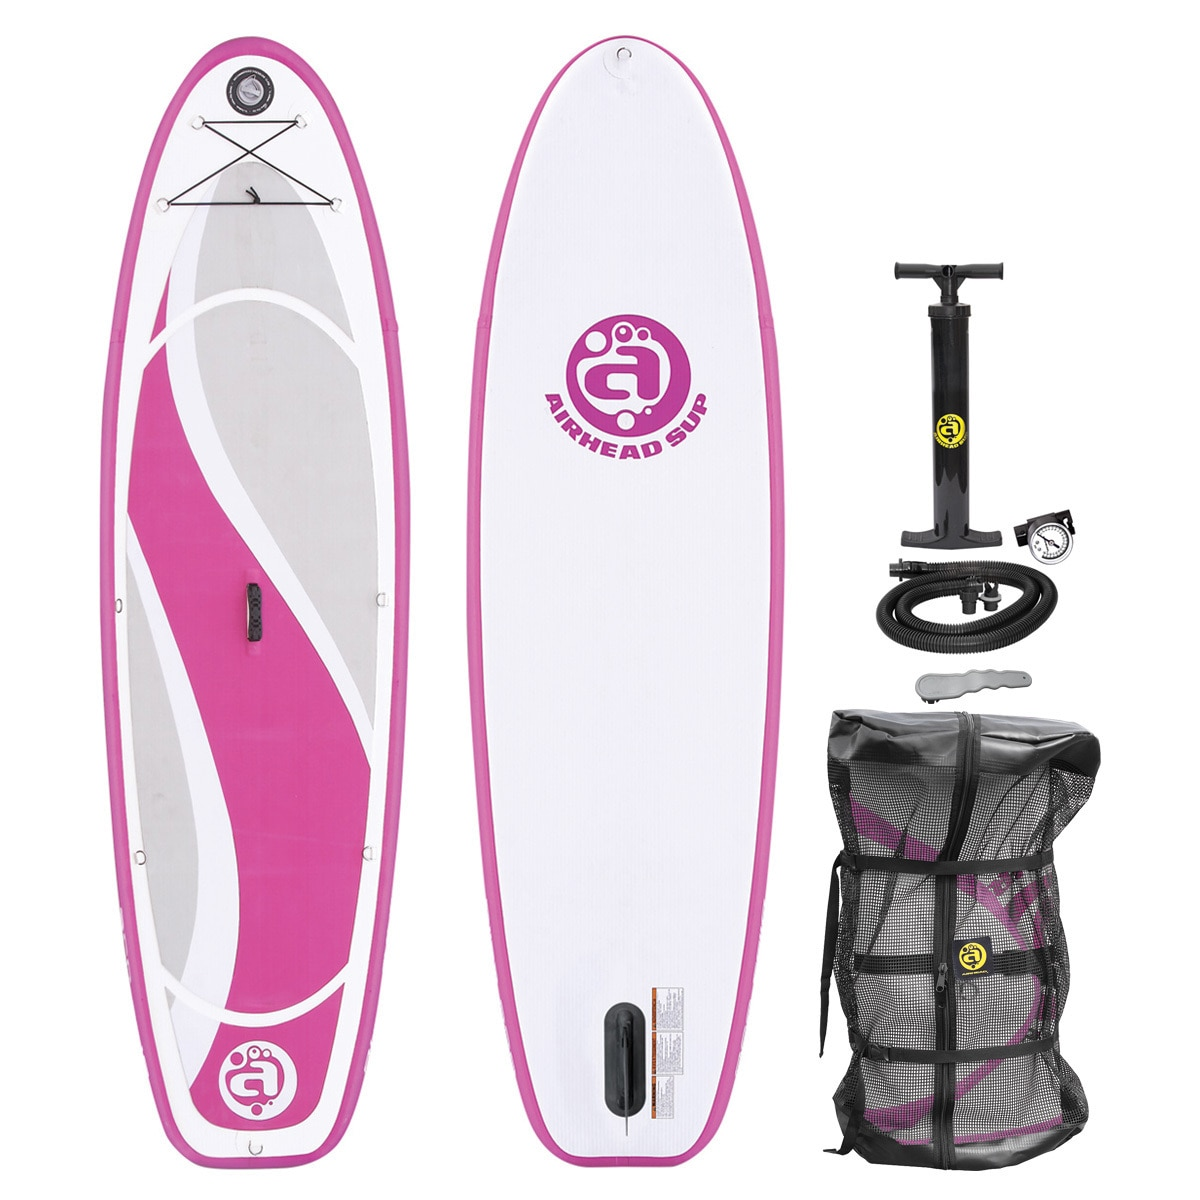 Airhead Bliss 930 White and Pink Inflatable Stand-up Paddleboard (Stand Up Paddleboard)